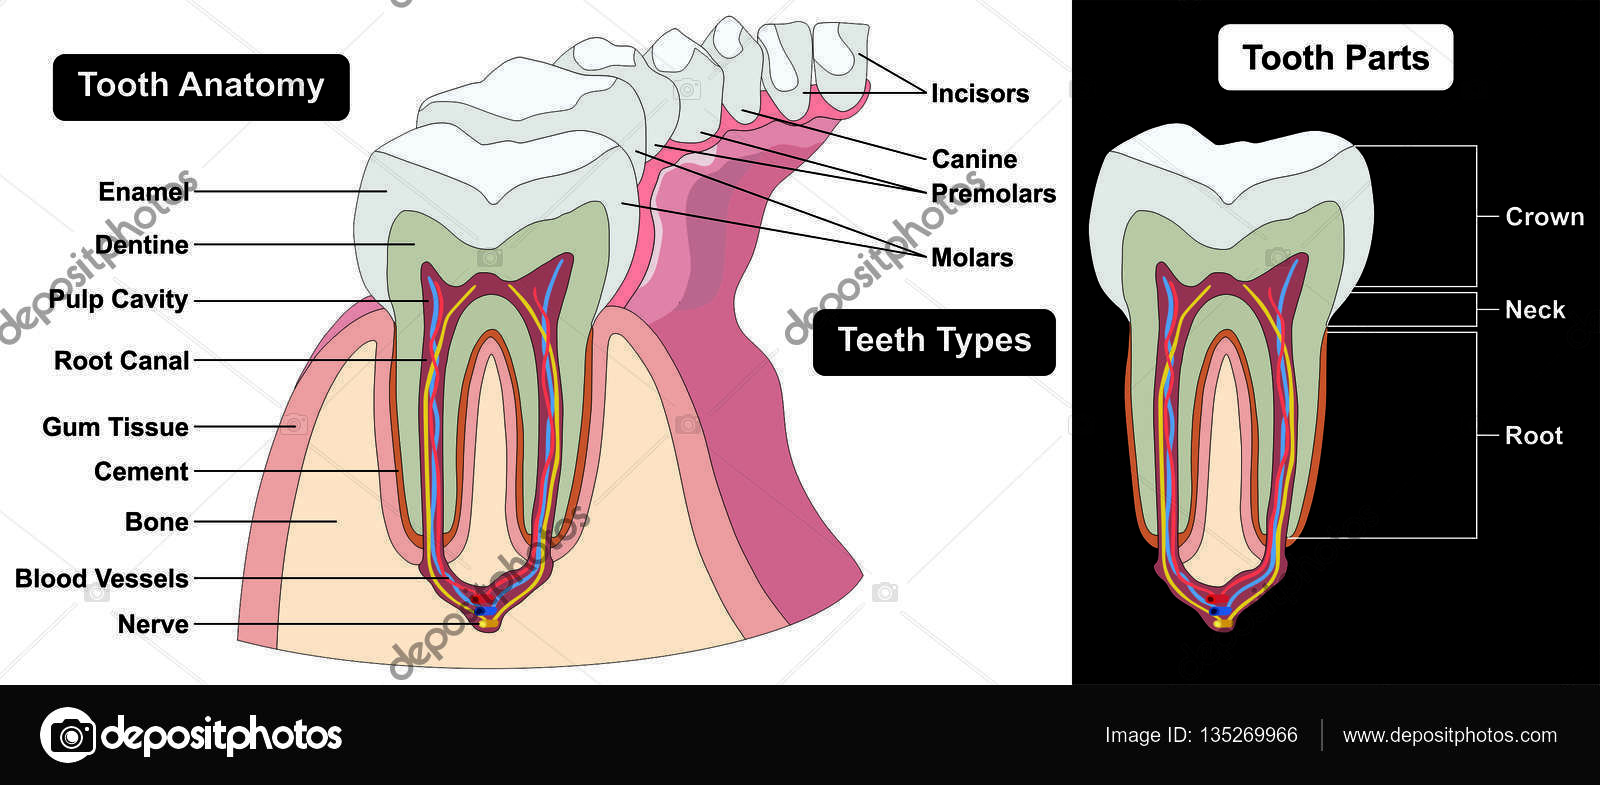 Tooth types anatomy parts stock photo udaix 135269966 human tooth cross section anatomy enamel dentine pulp cavity gum tissue bone nerve blood vessels cement canal part crown neck root teeth types incisors ccuart Image collections